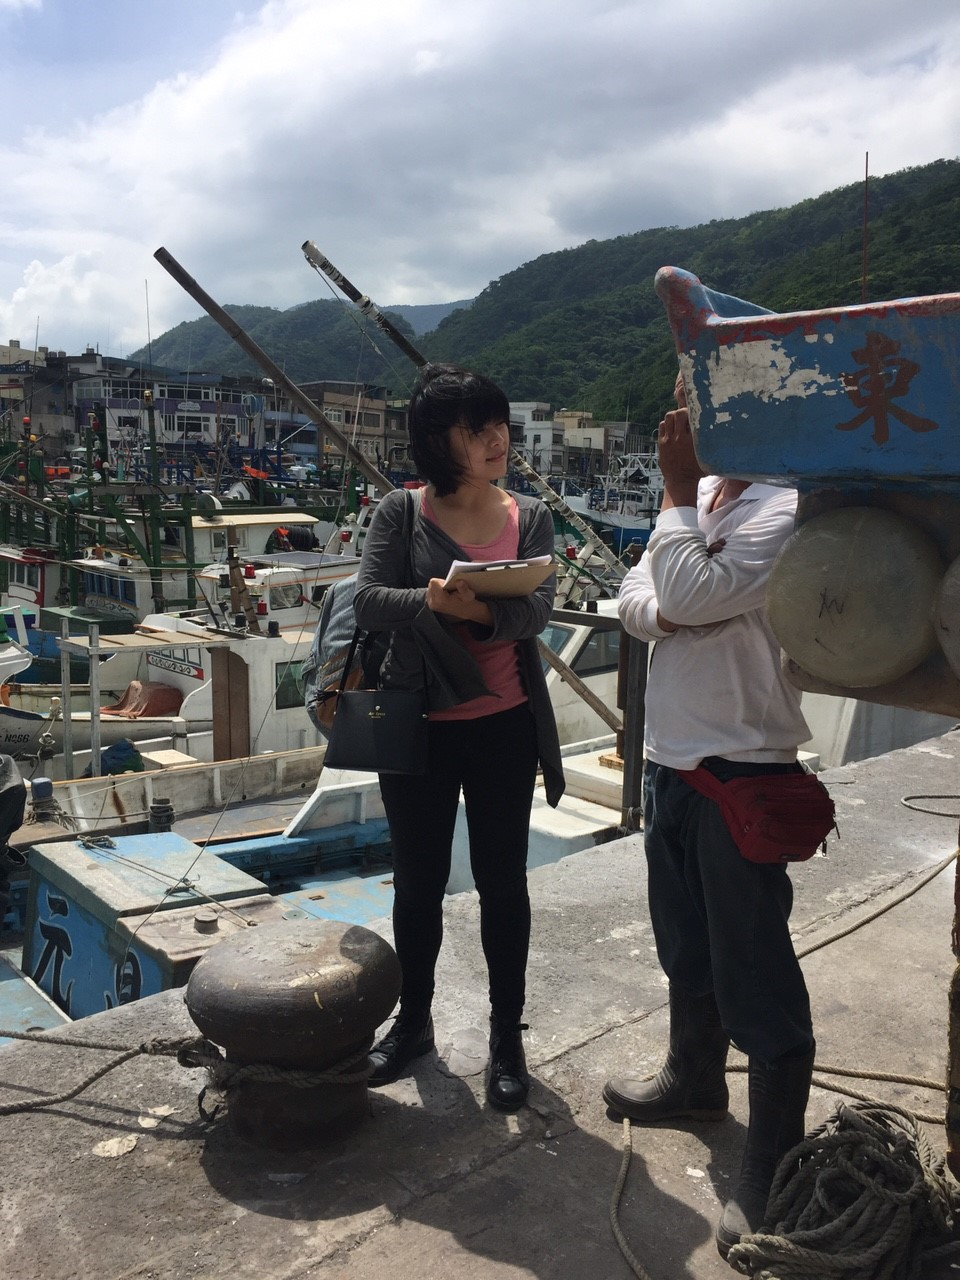 Pei conducts surveys in Taiwan in efforts to understand the perception of threat to fisheries.